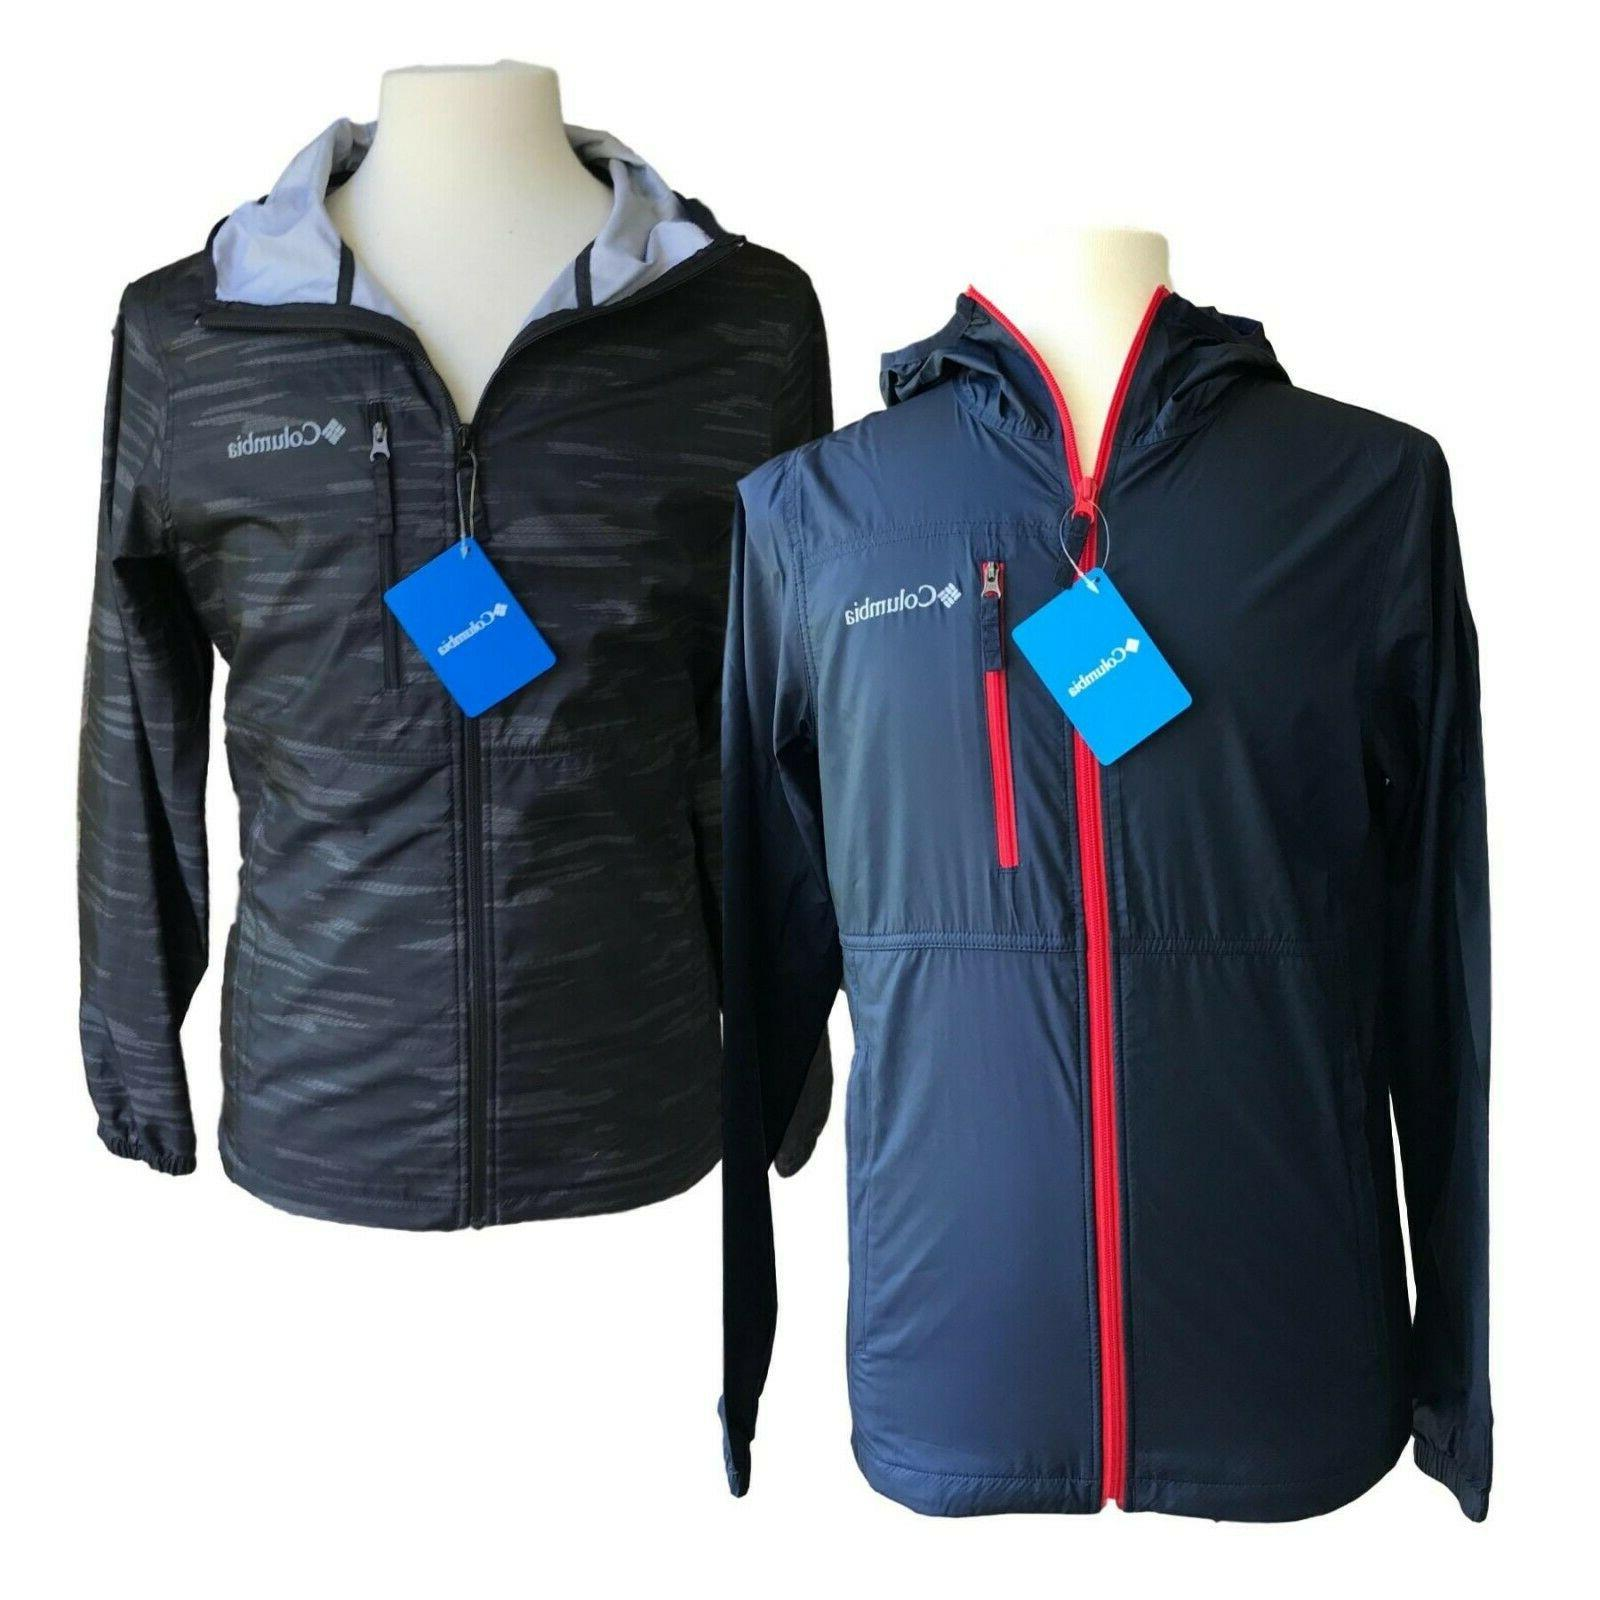 new 75 mens morning view packable hooded